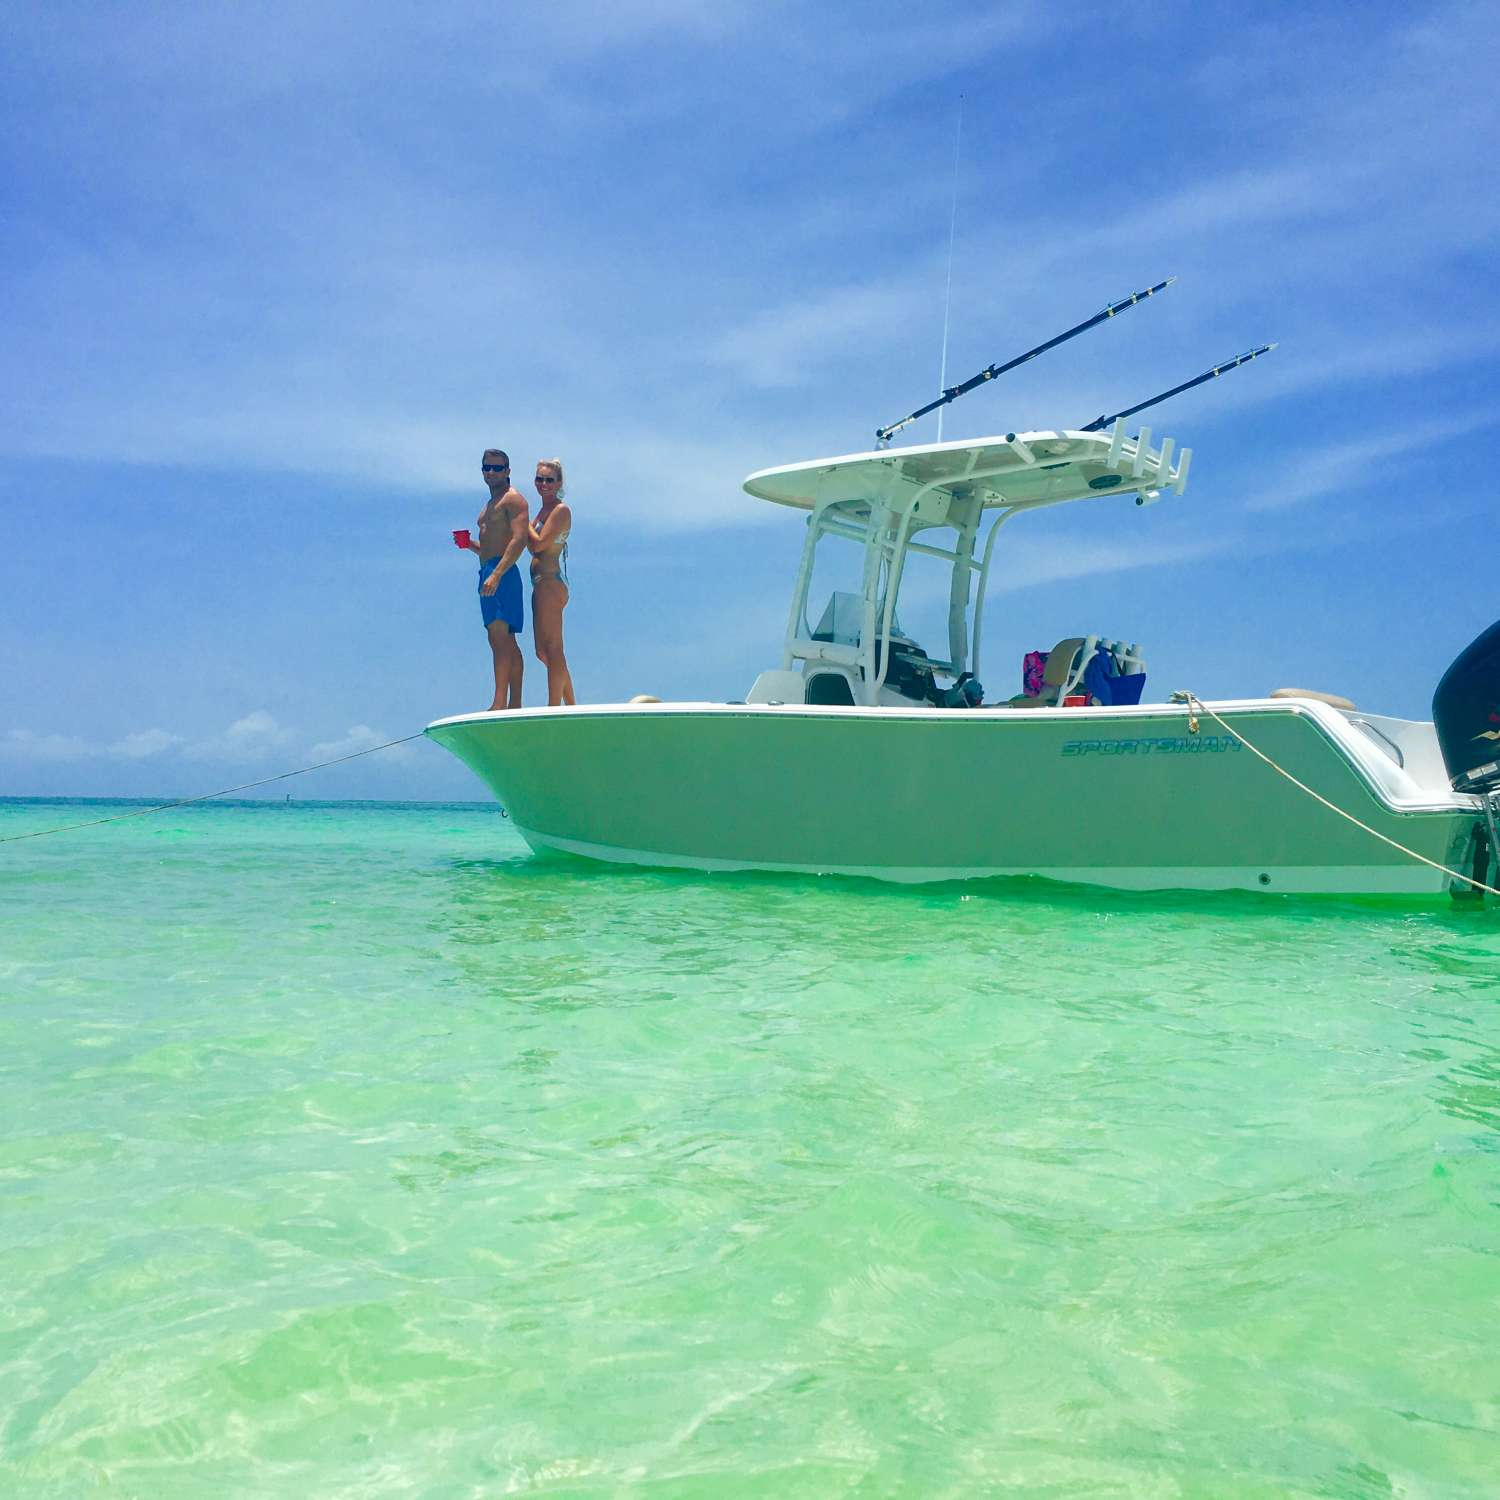 Title: Sandbar Saturdays - On board their Sportsman Open 232 Center Console - Location: Jacksonville, Florida. Participating in the Photo Contest #SportsmanSeptember2017